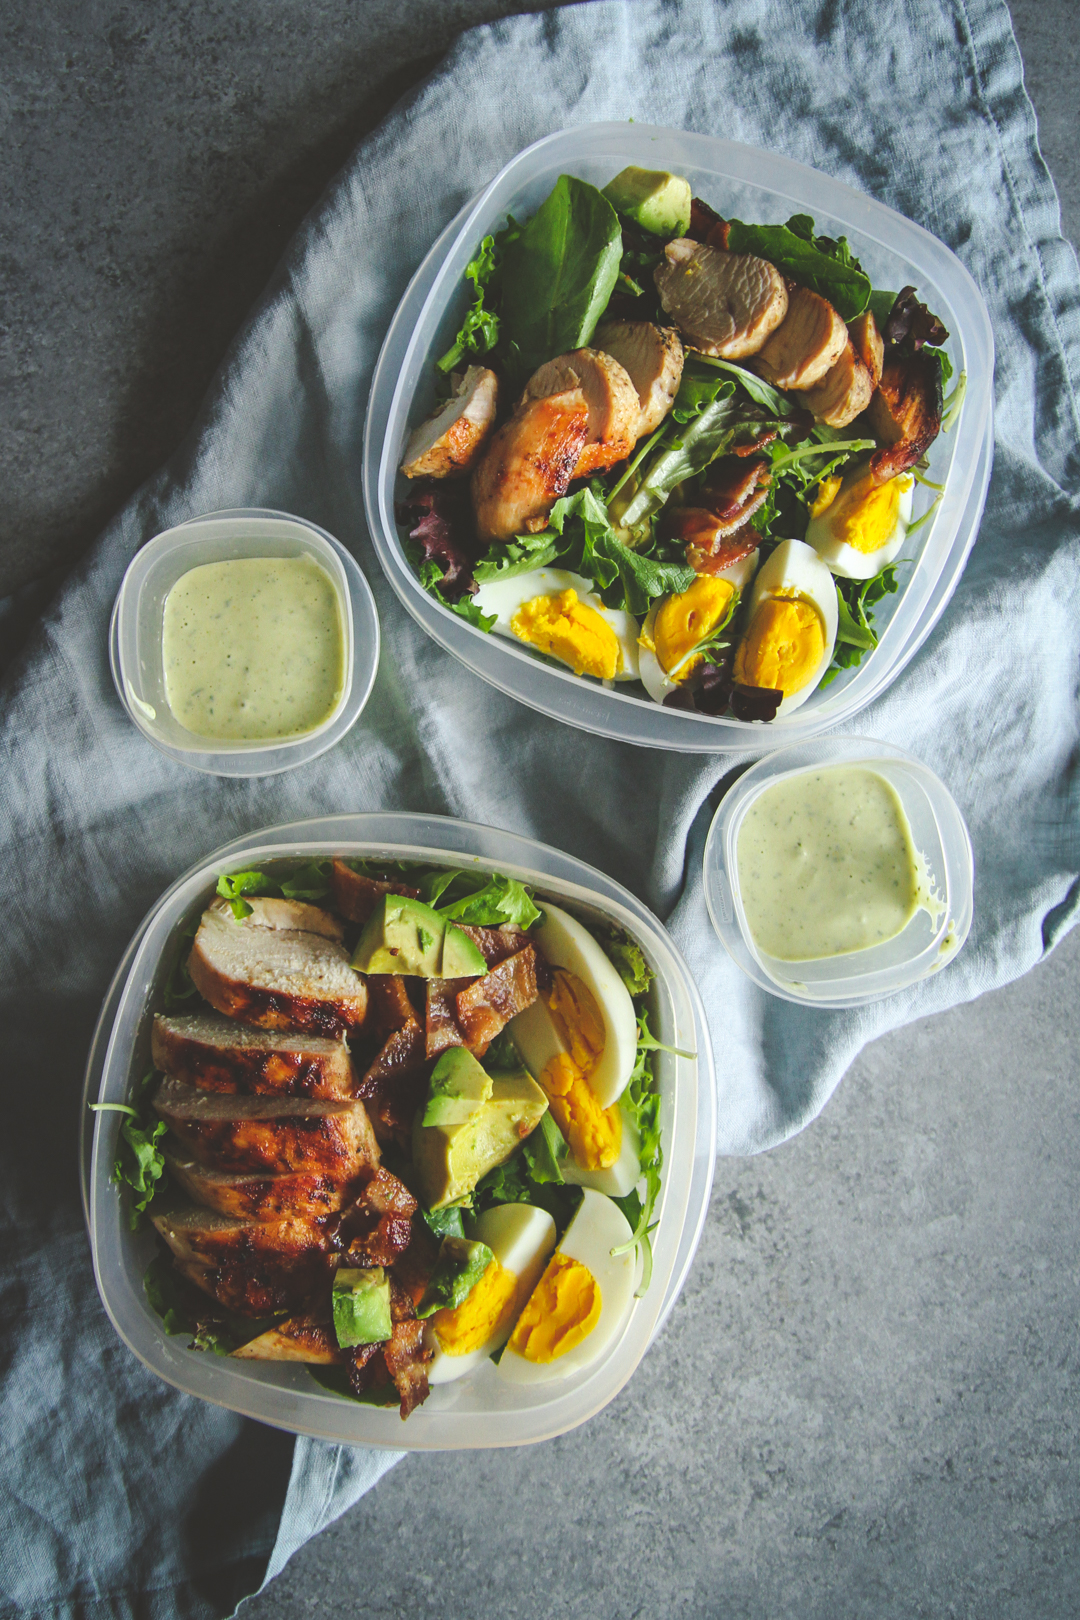 Panera green goddess cobb salad recipe, healthy and filling grilled chicken salad recipe, filling salad recipe